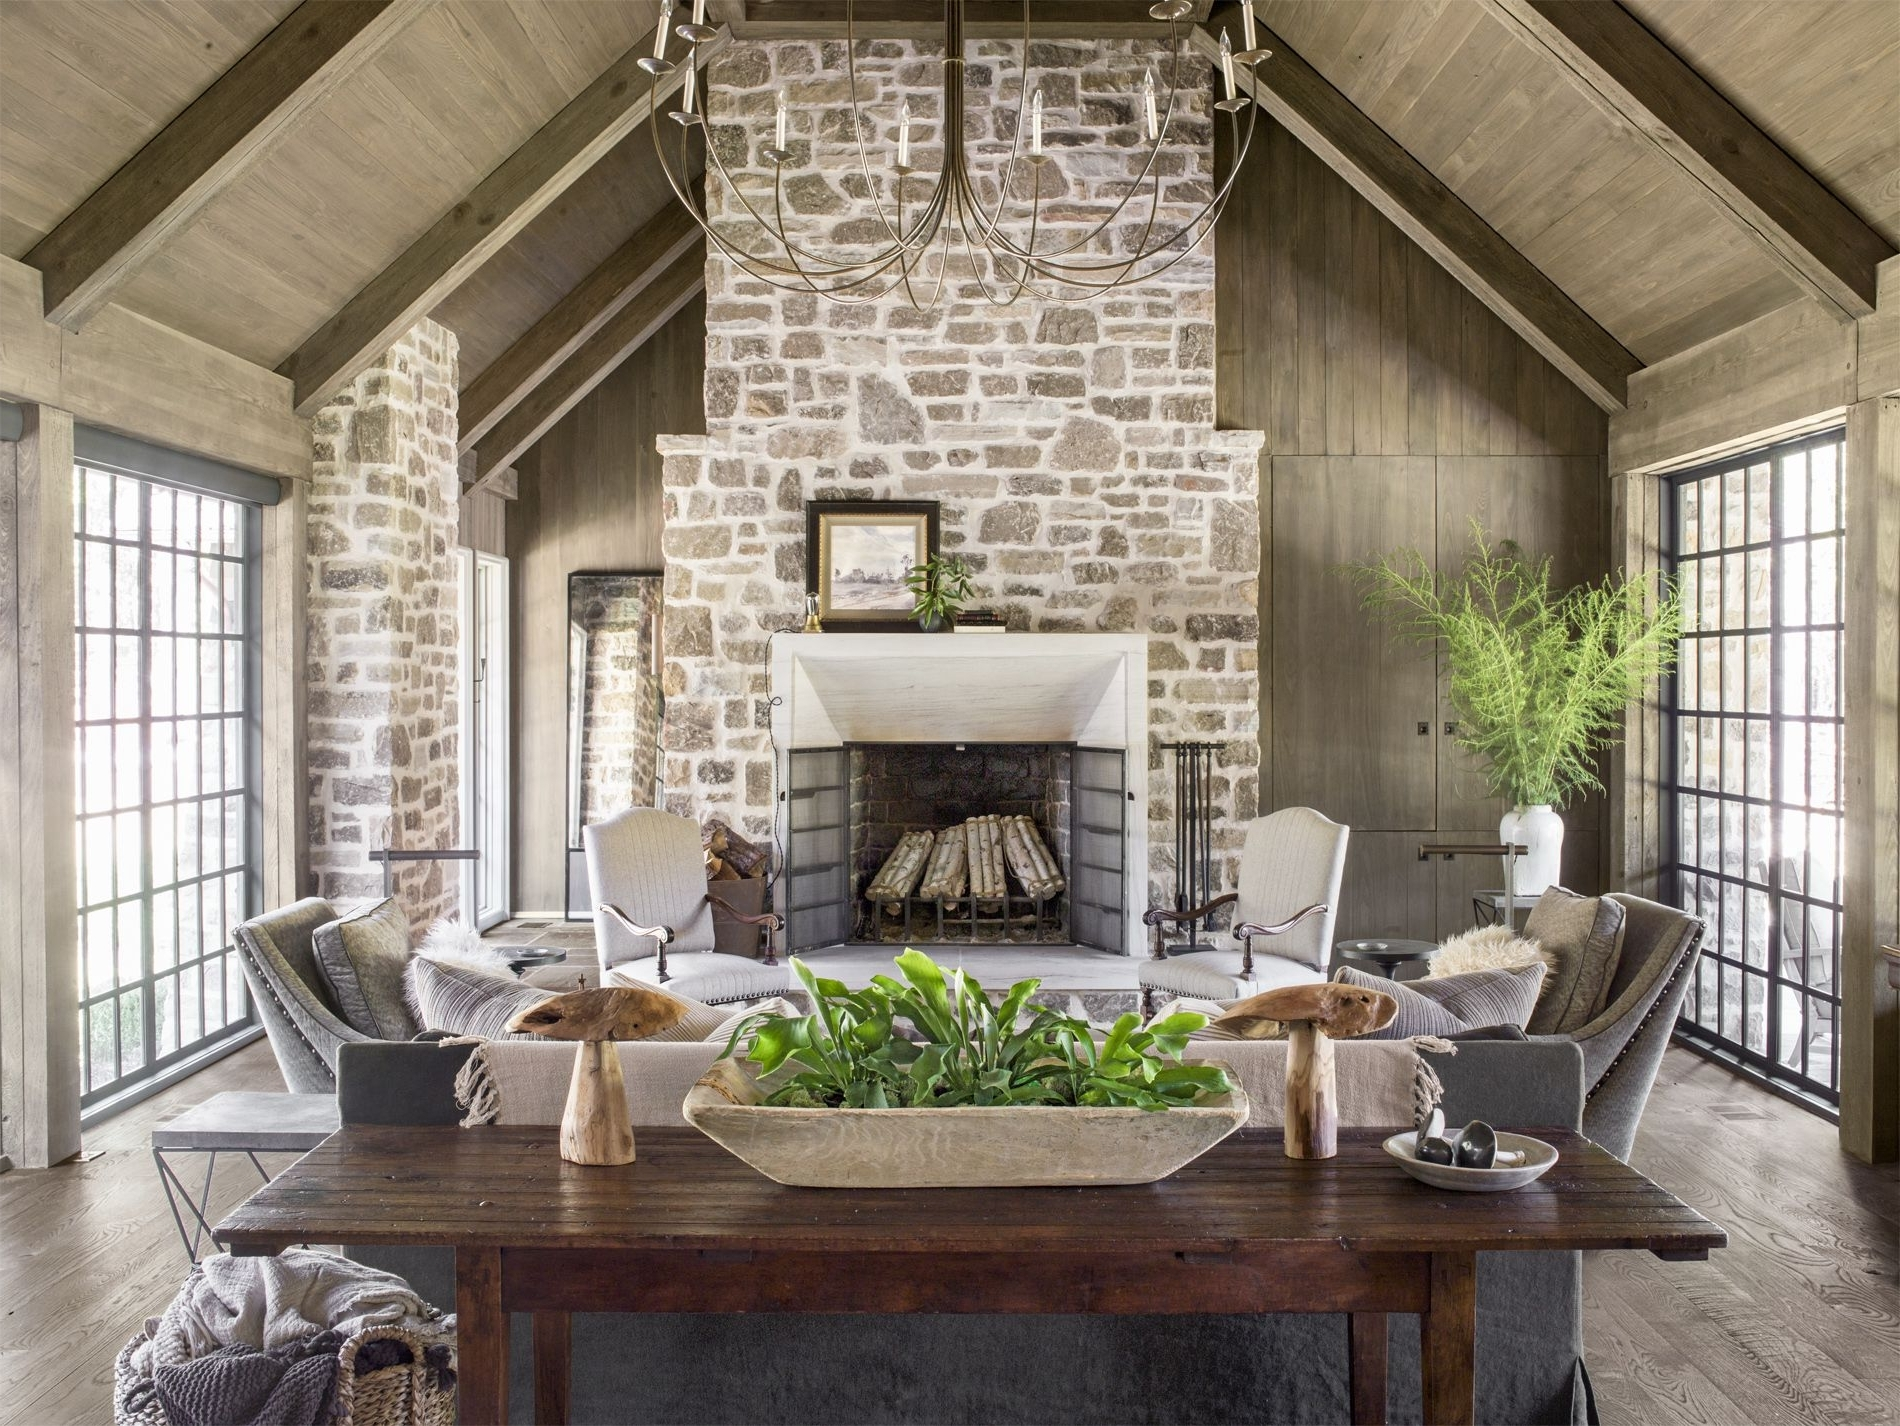 41 Cozy Living Rooms Cozy Living Room Furniture And Decor 10+ Cosy Country Living Room Ideas